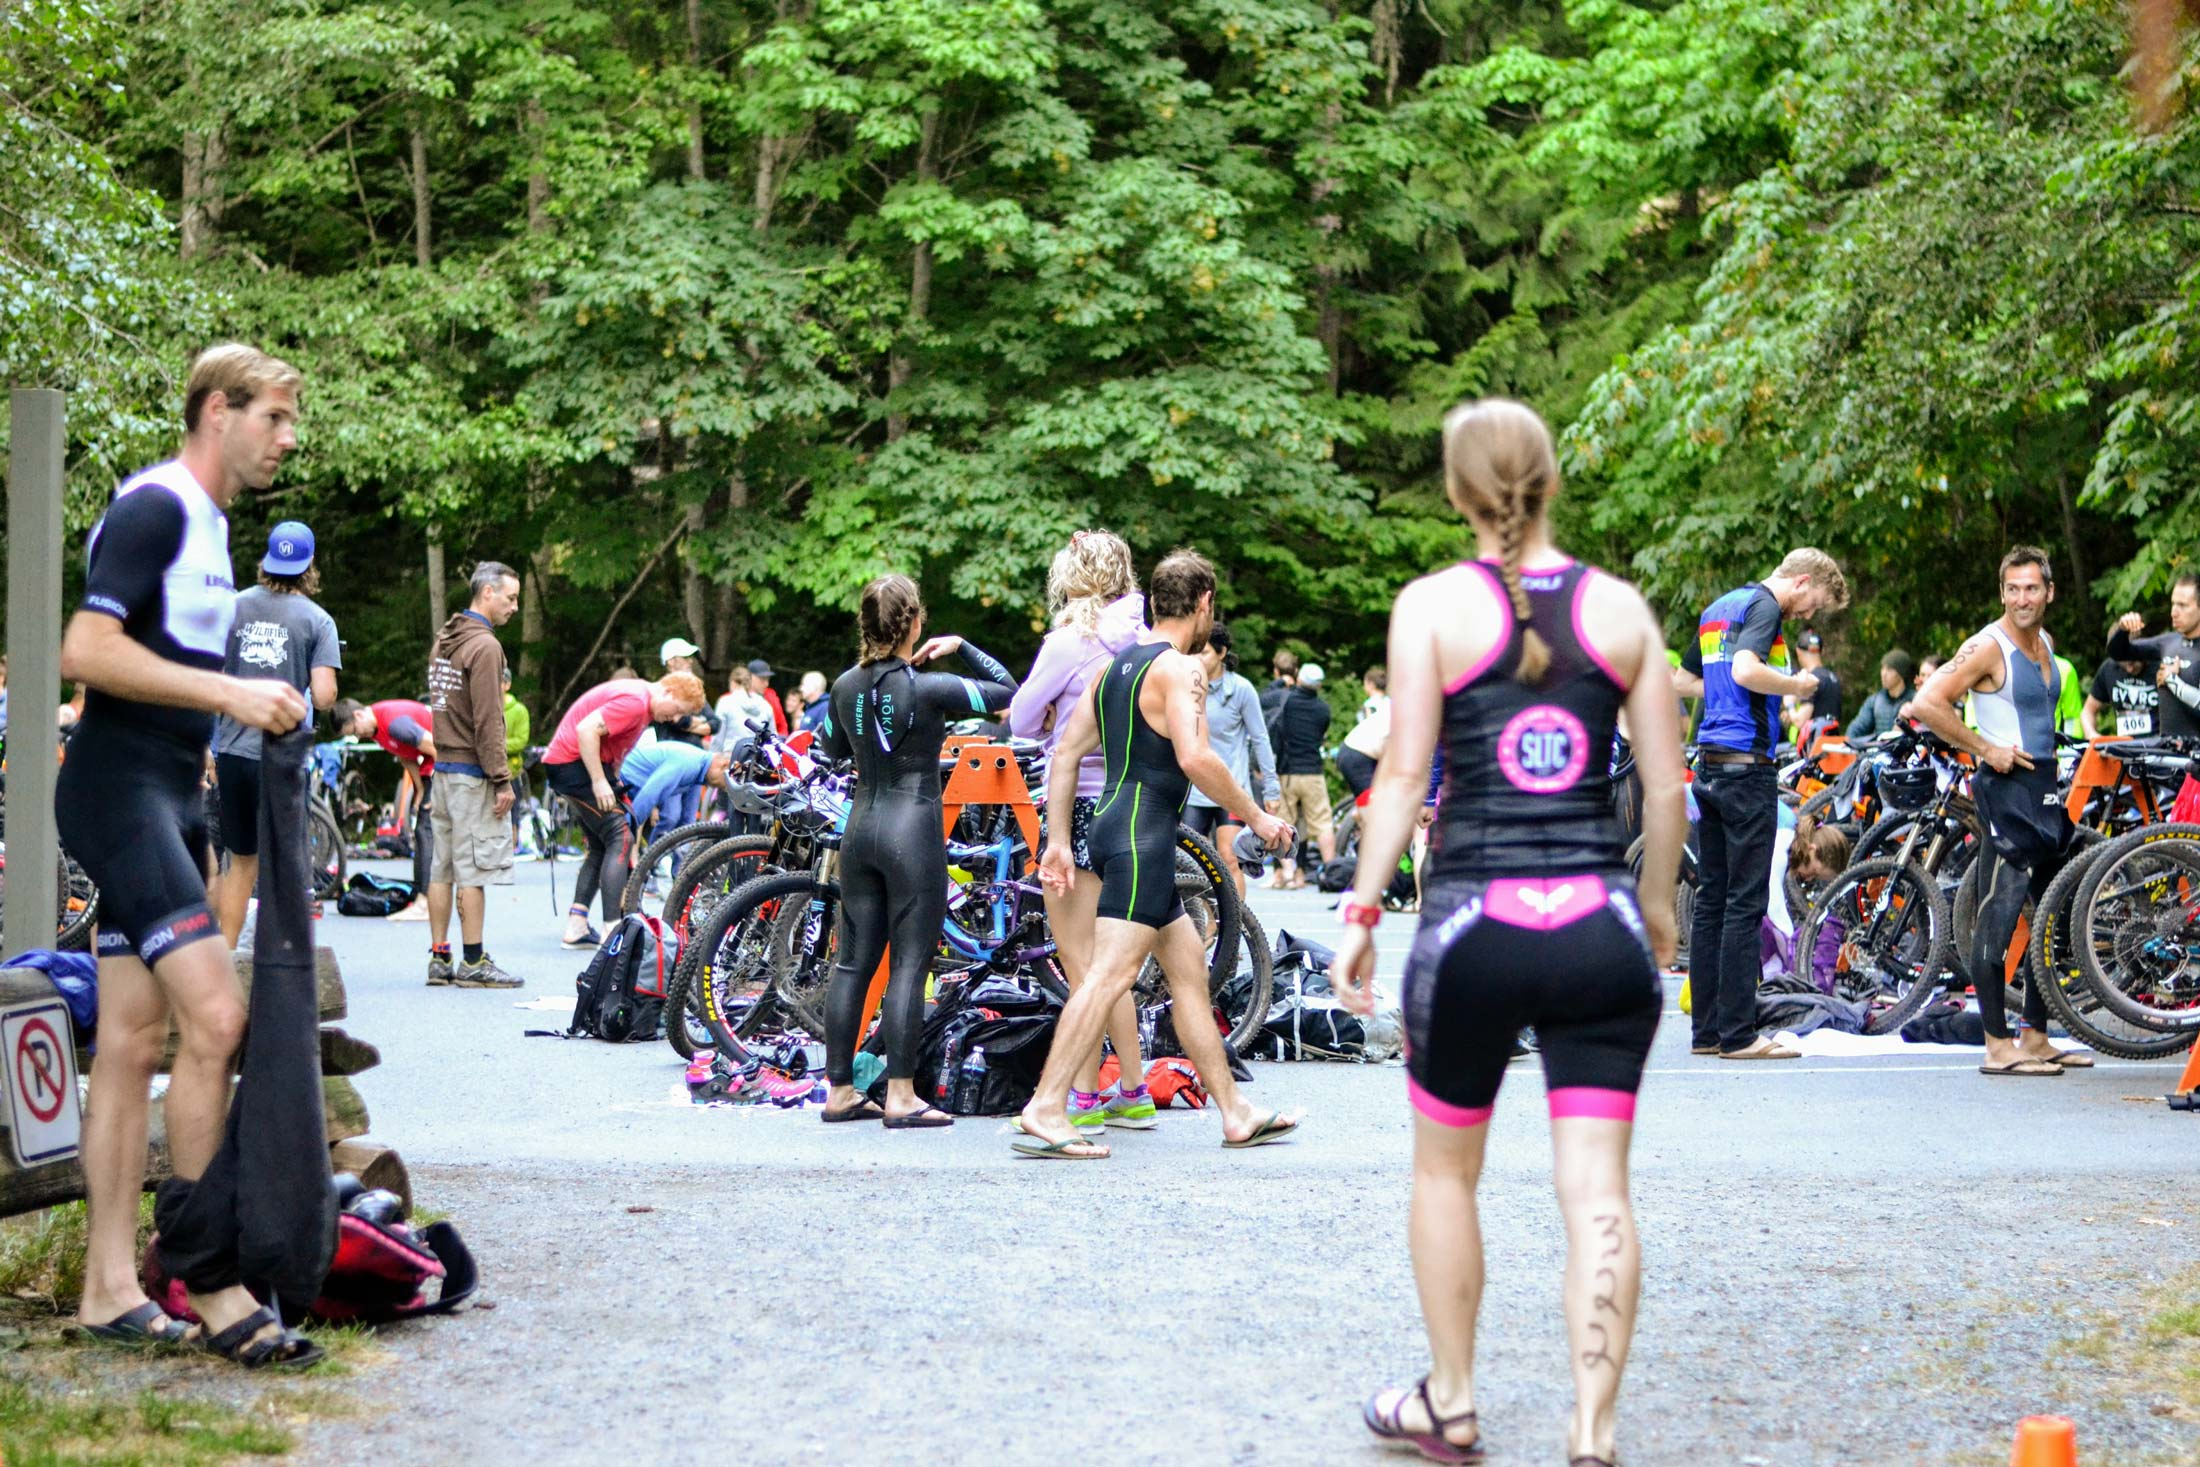 Athletes prepare for the race in the transition zone.